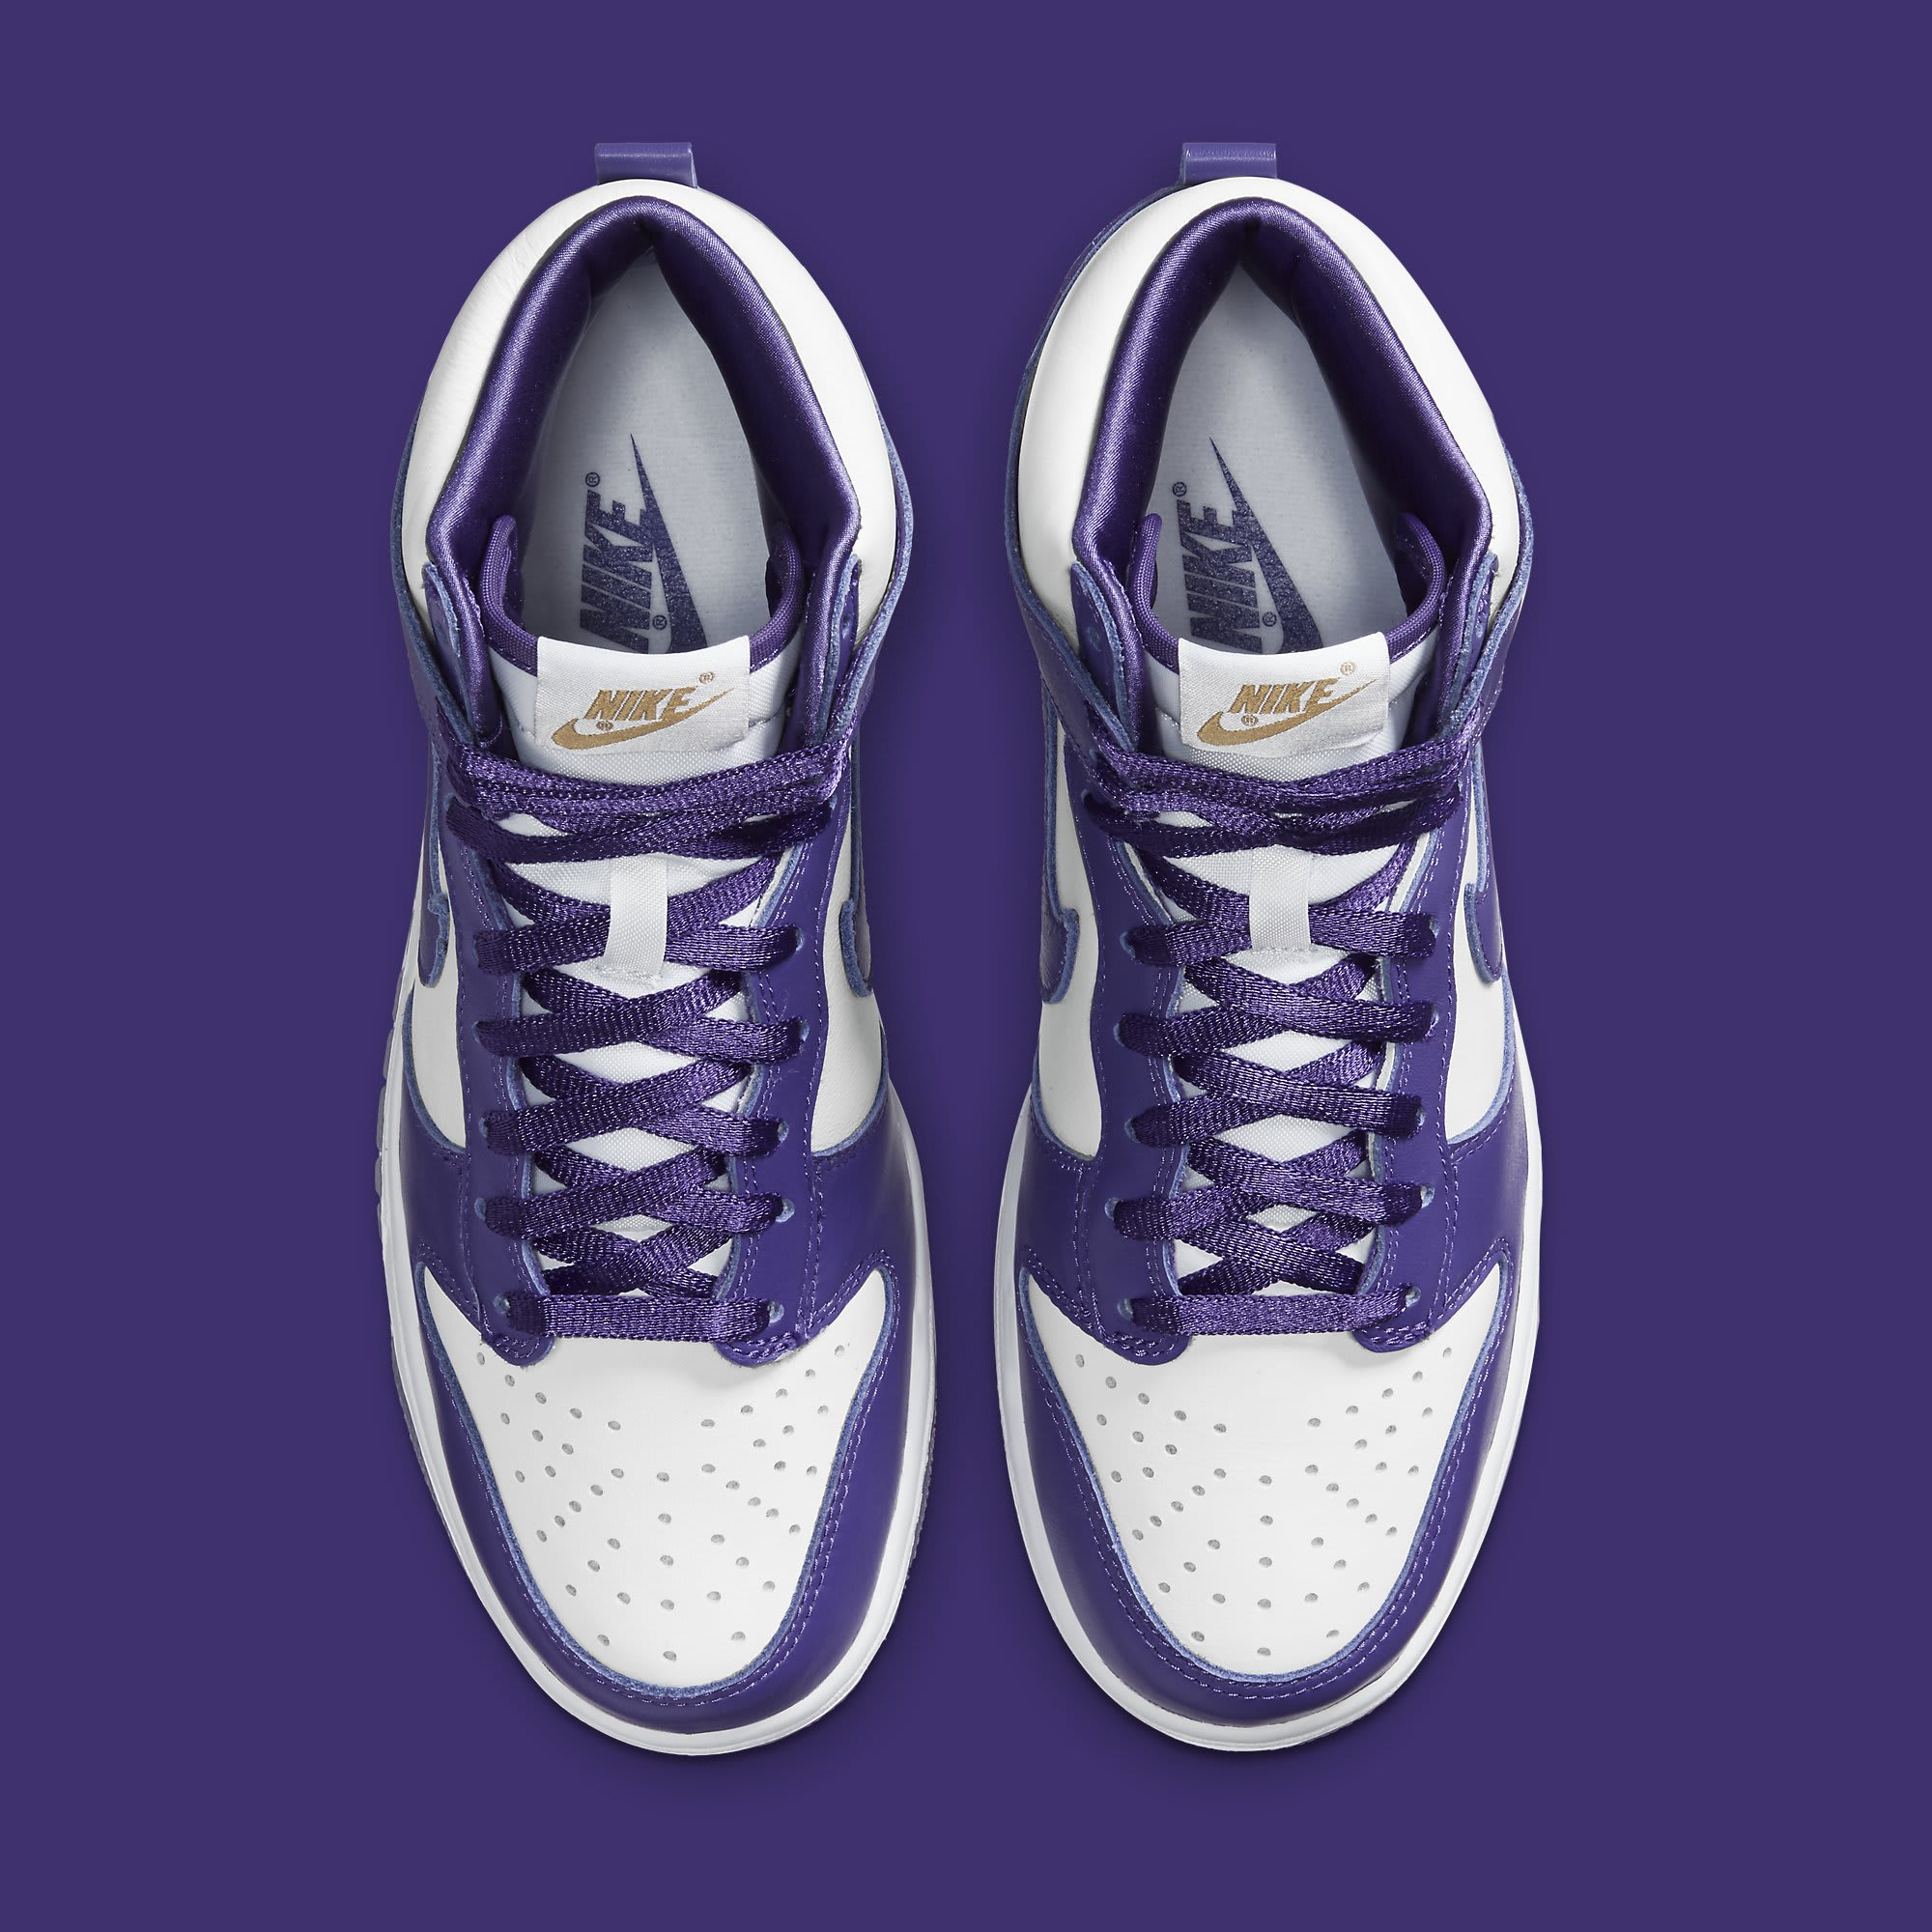 Nike Dunk High Women's Varsity Purple Release Date DC5382-100 Top